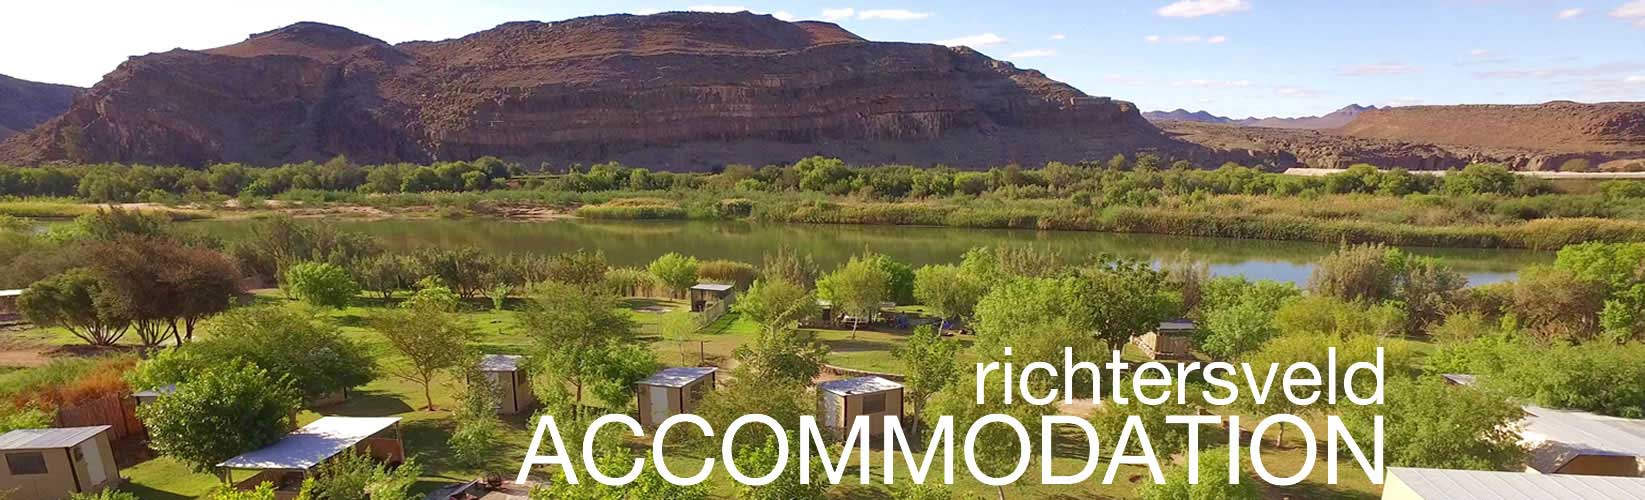 Orange River Rafting accommodation